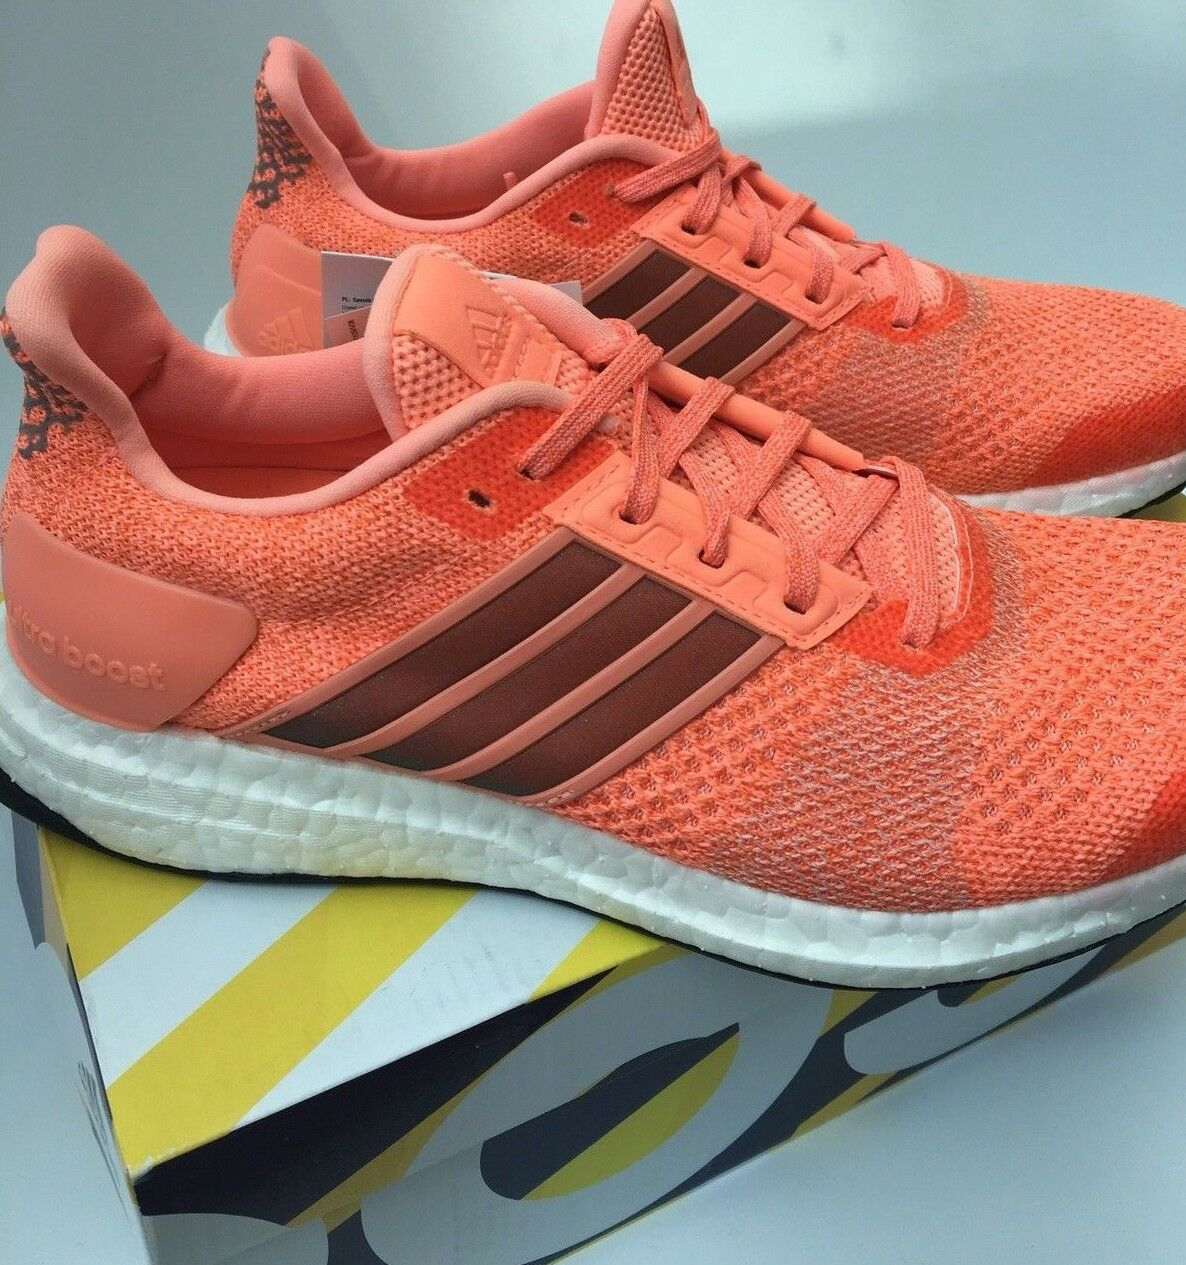 Stability St Running Brand Chaussures Adidas Af6522 Ultra Boost vNn80mwO